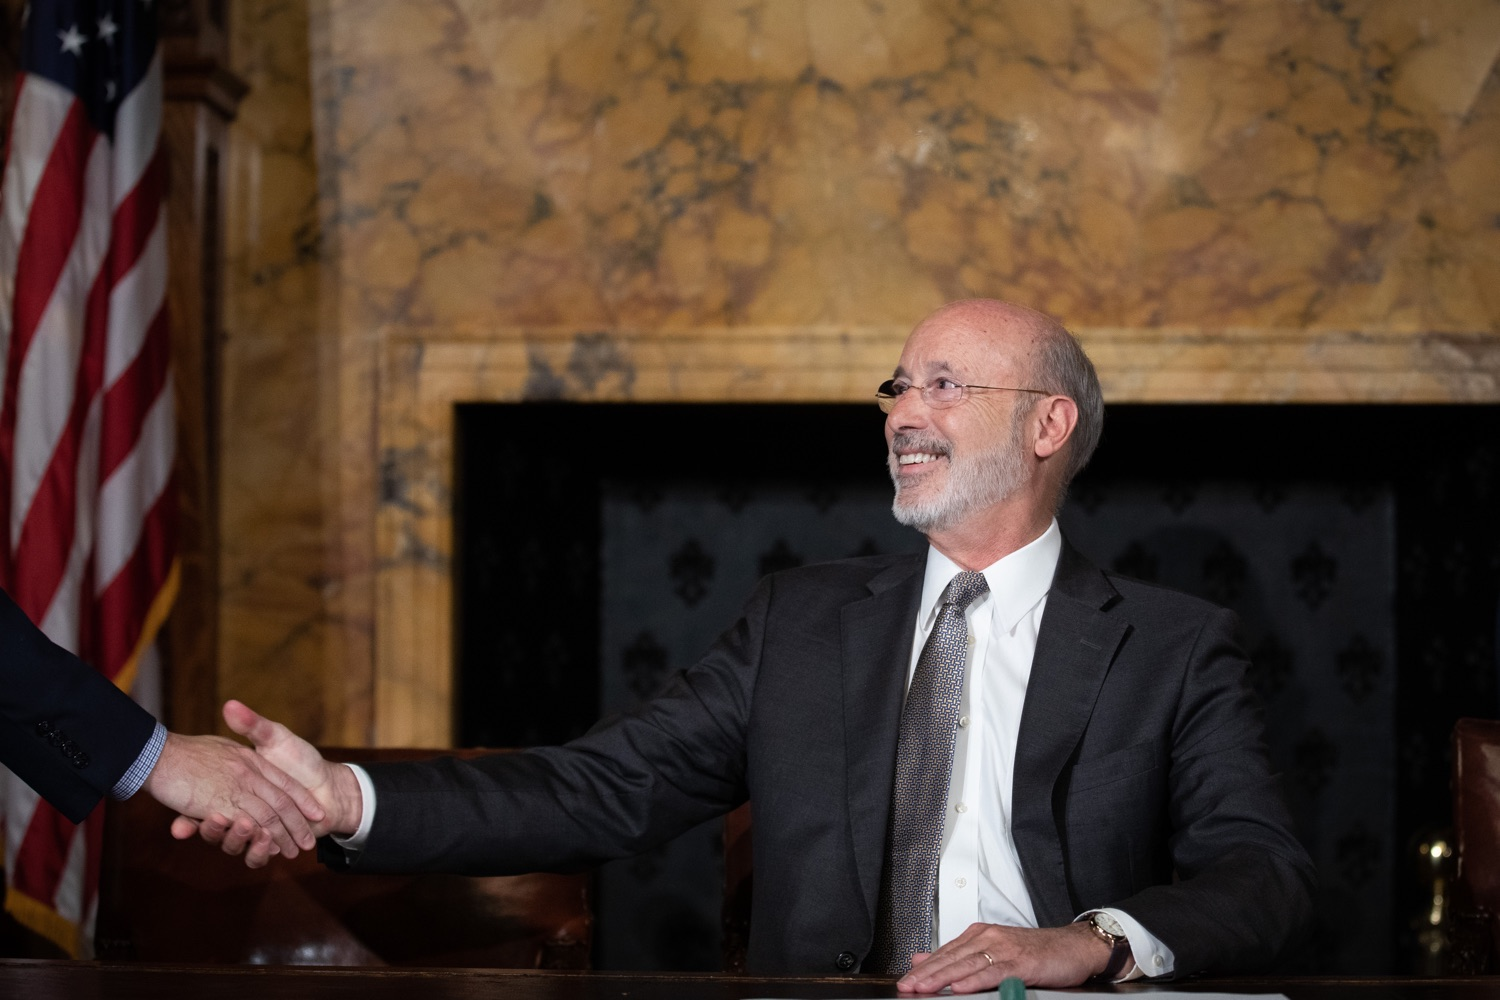 "<a href=""http://filesource.abacast.com/commonwealthofpa/photo/17554_gov_voter_reform_bill_dz_016.jpg"" target=""_blank"">⇣ Download Photo<br></a>Harrisburg, PA  Governor Tom Wolf speaks at the Election Reform Bill signing. Governor Wolf made voting more convenient and secure by signing Act 77 of 2019, the most significant improvement to Pennsylvanias elections in more than 80 years. The bipartisan compromise legislation takes effect for the April 2020 primary election and makes Pennsylvania a national leader with voter-friendly election reforms."